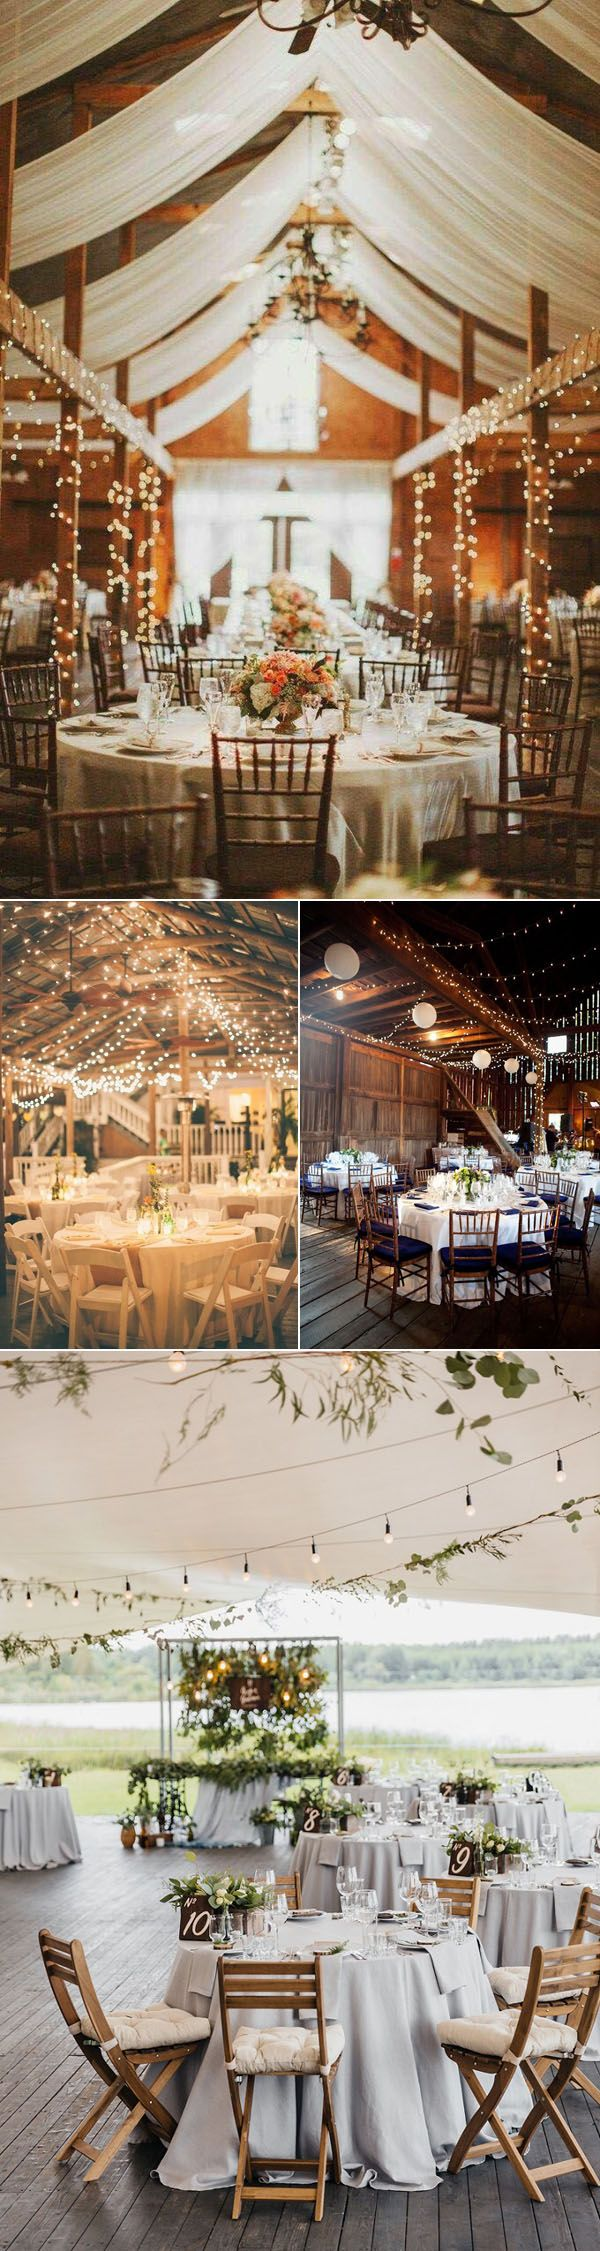 Best 25 rustic wedding decorations ideas on pinterest country 32 rustic wedding decoration ideas to inspire your big day junglespirit Gallery